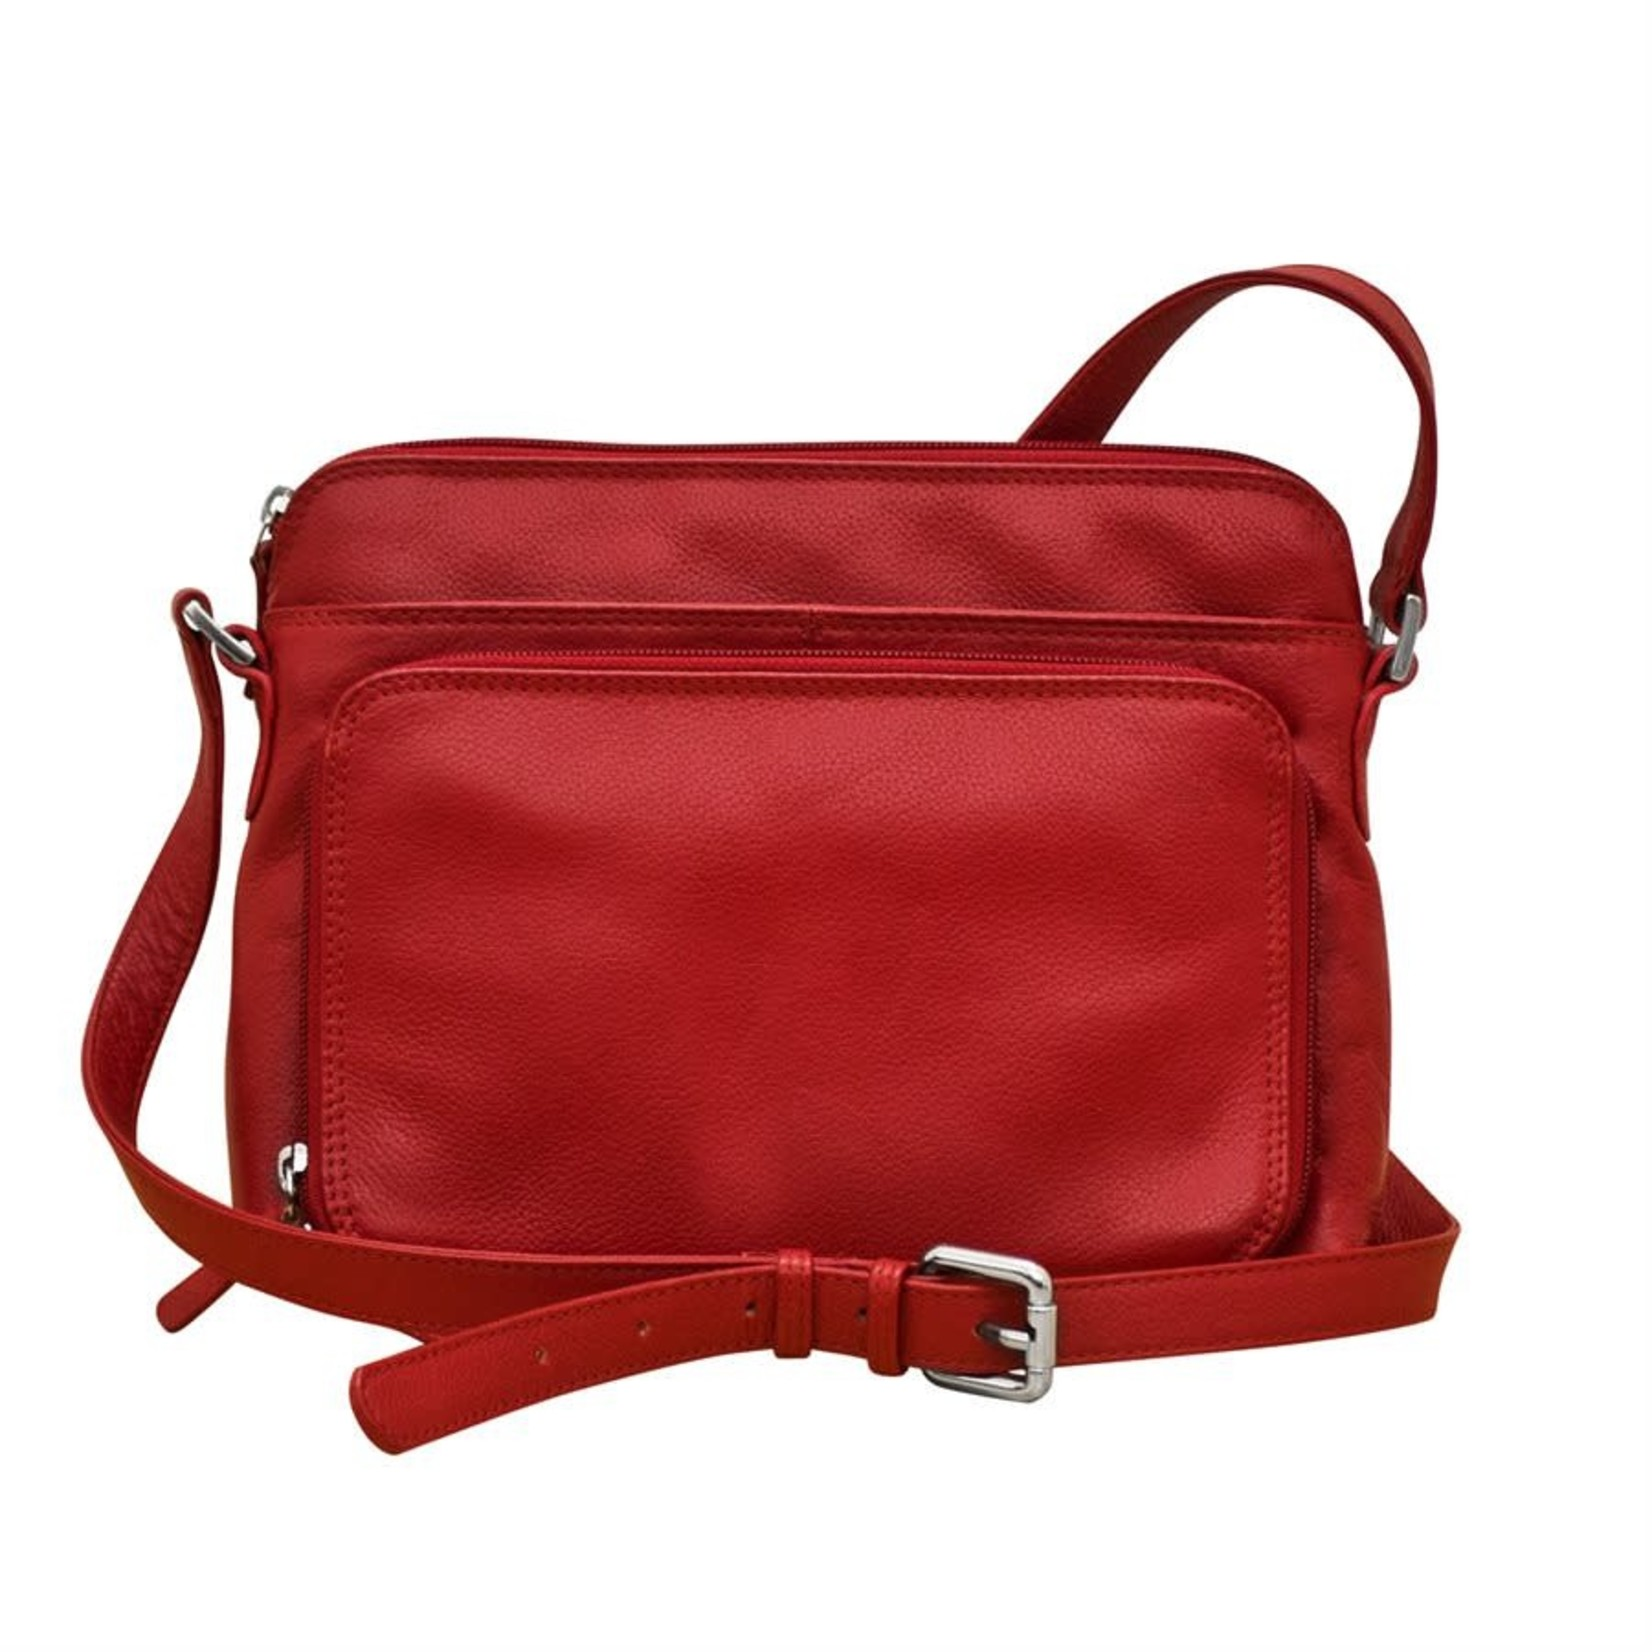 Leather Handbags and Accessories 6333 Red - Organizer Bag